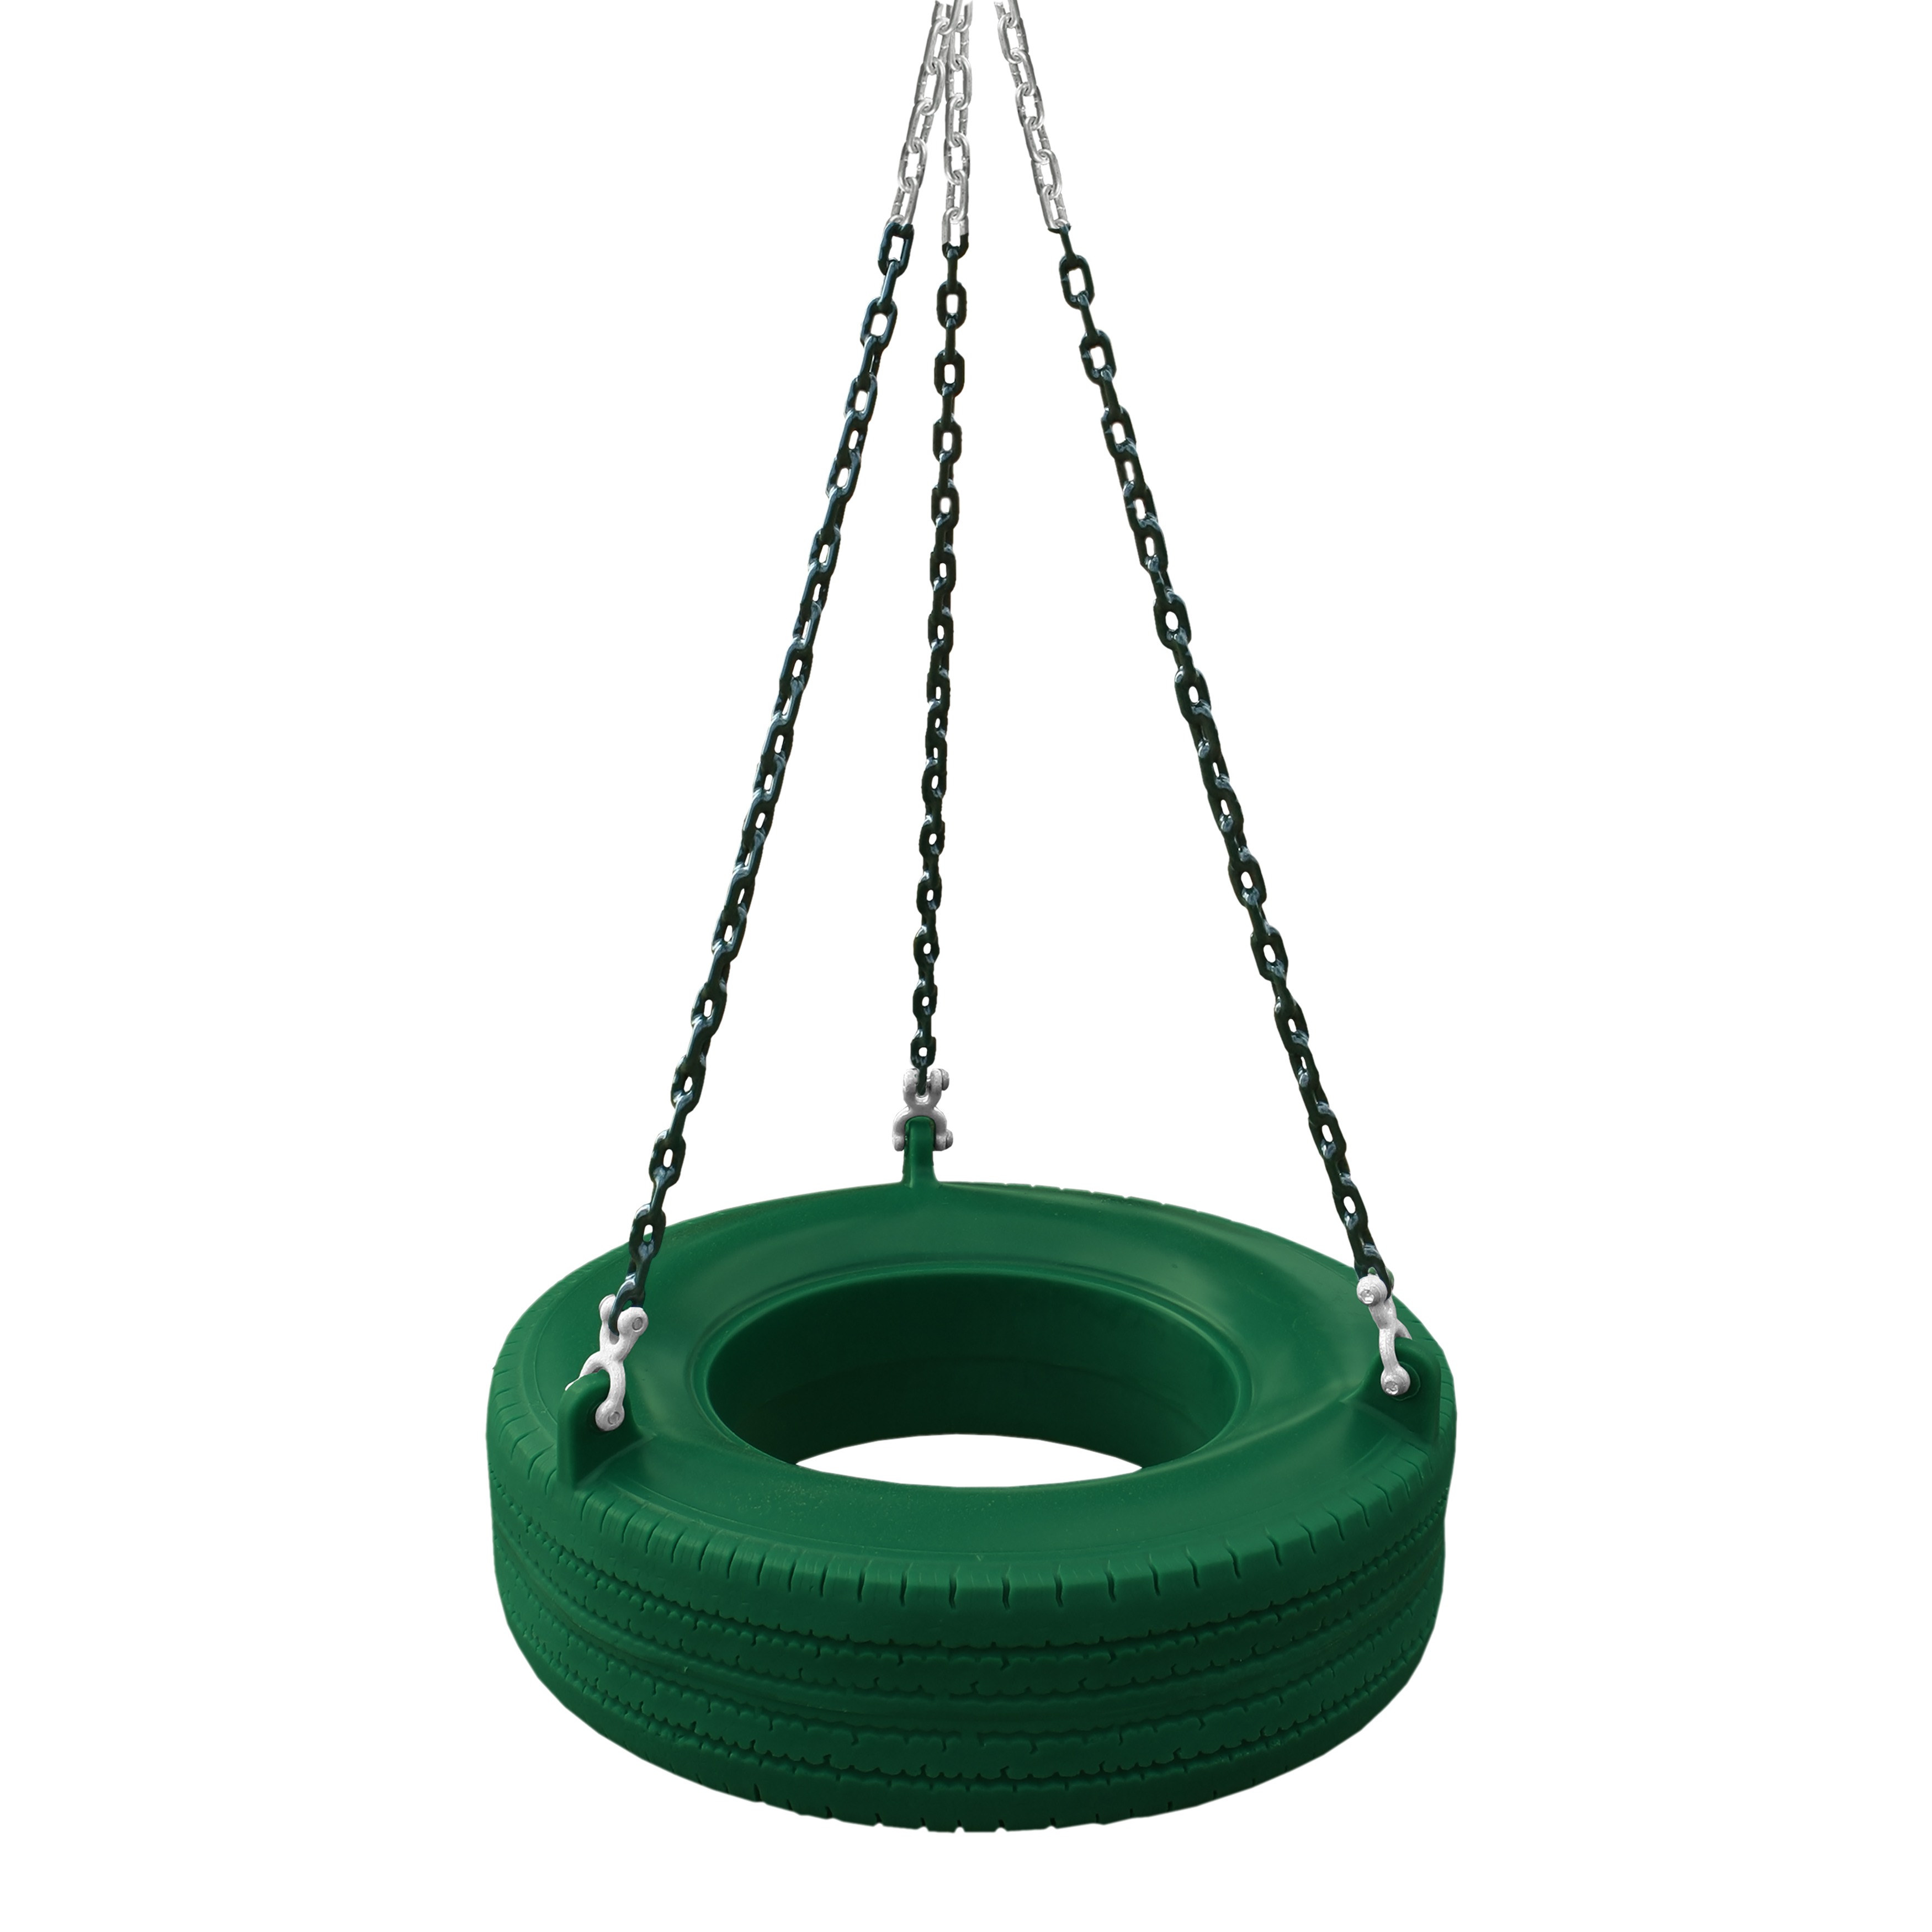 Gorilla Playsets 360 Turbo Tire Swing Green With Chains